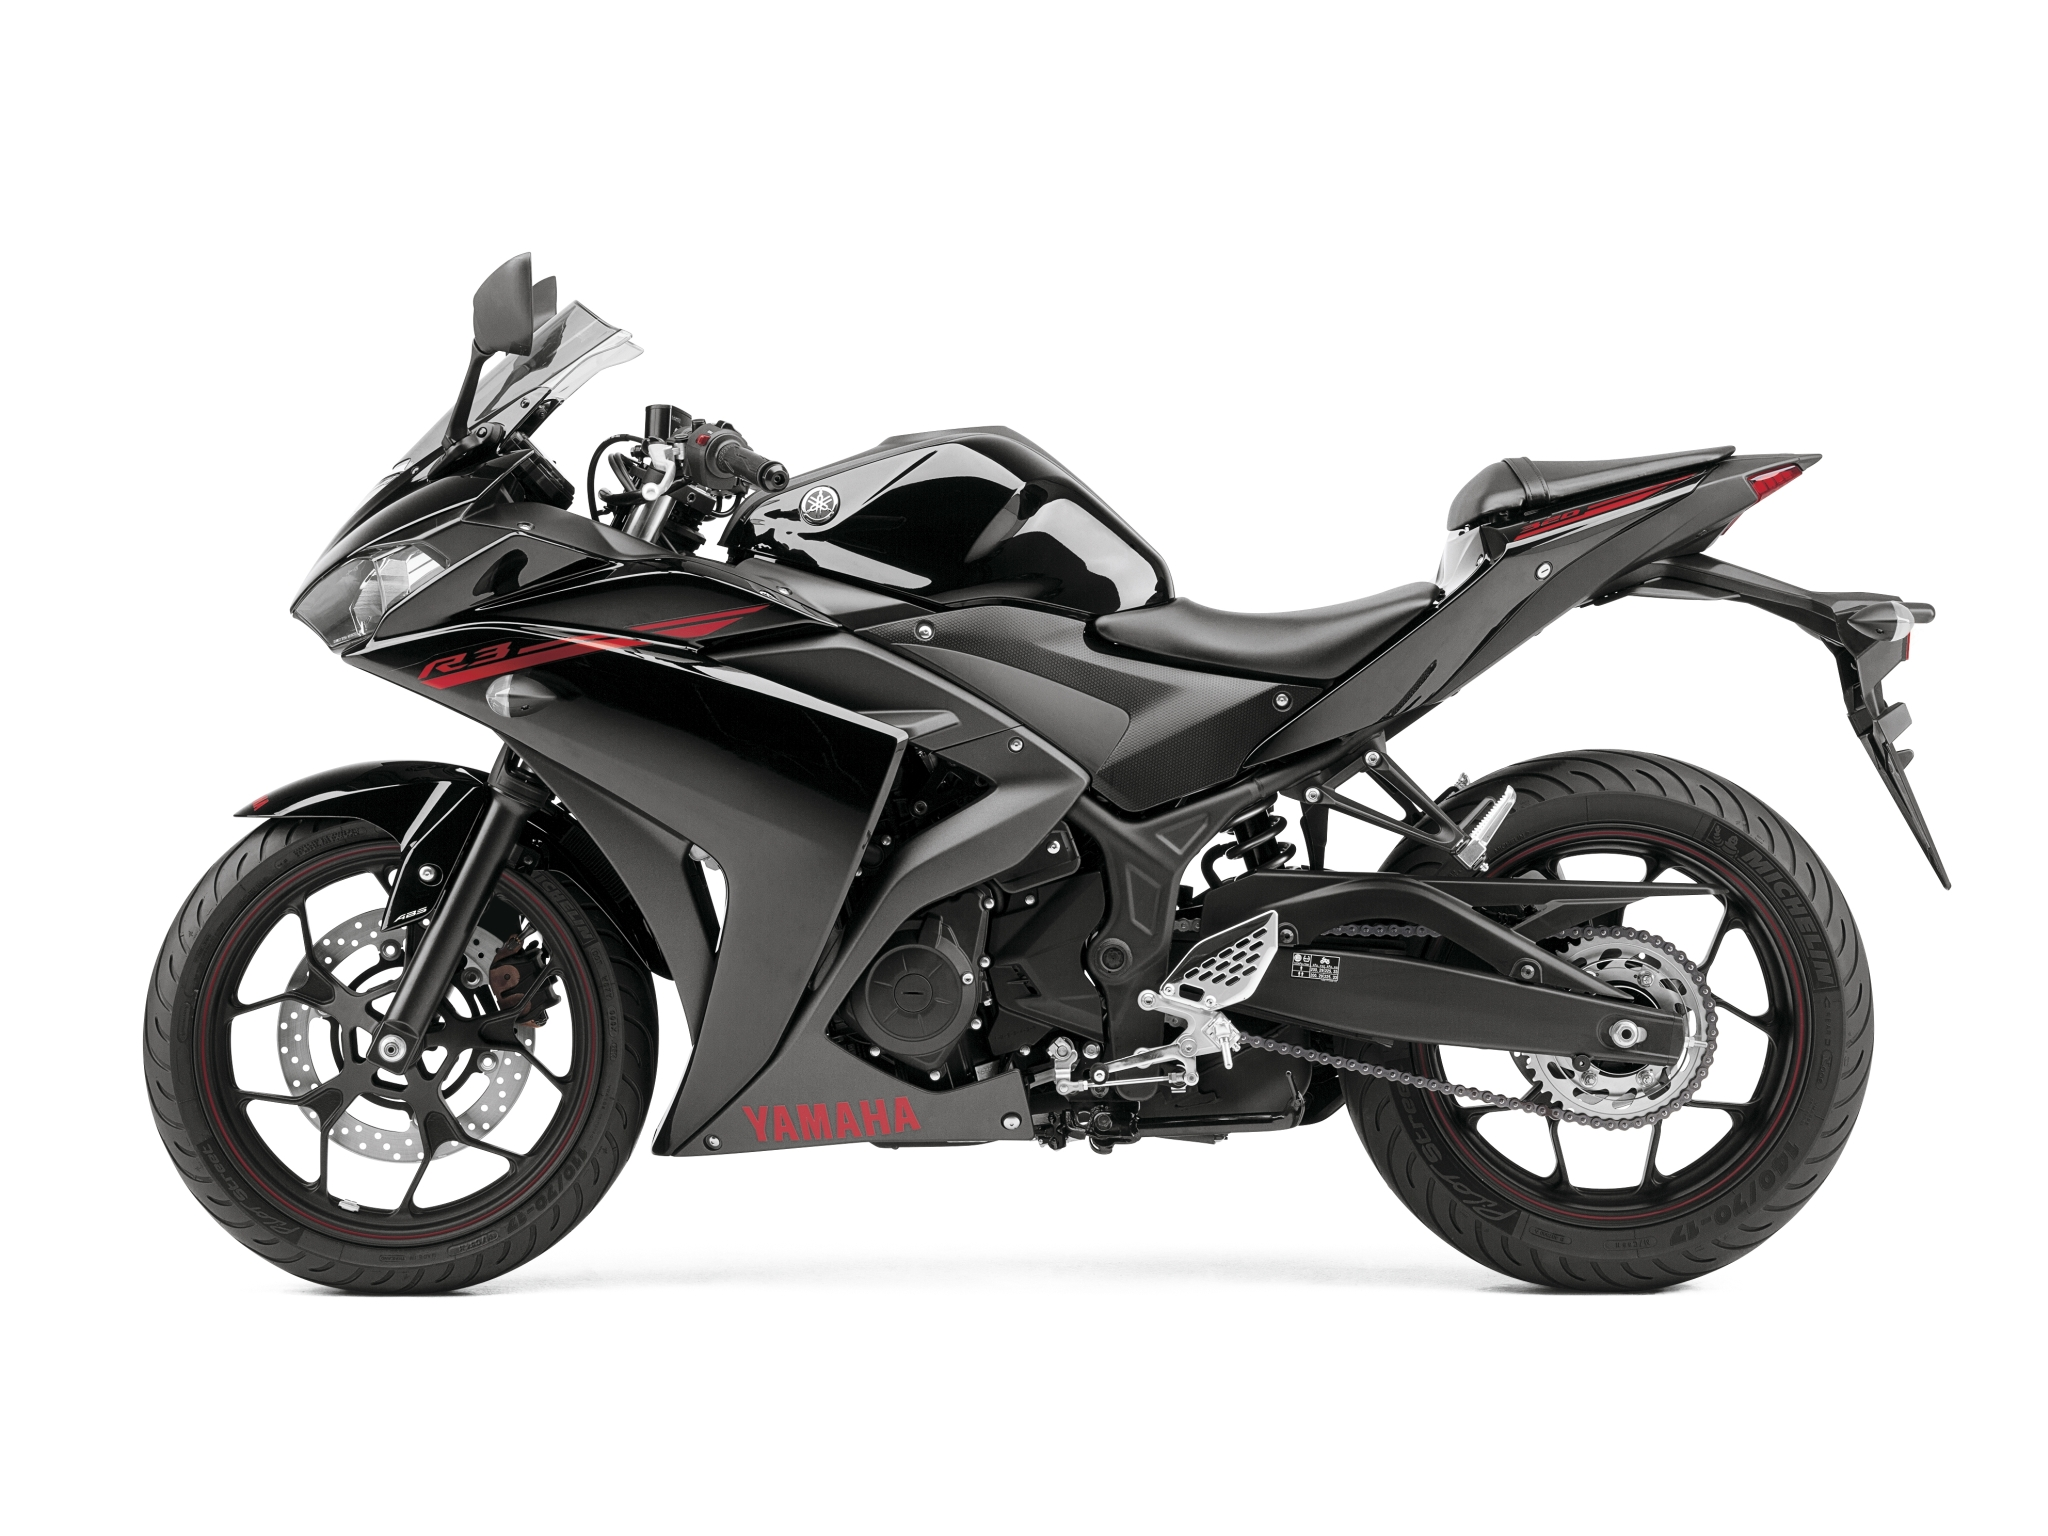 Download image 2015 Yamaha R3 PC, Android, iPhone and iPad. Wallpapers